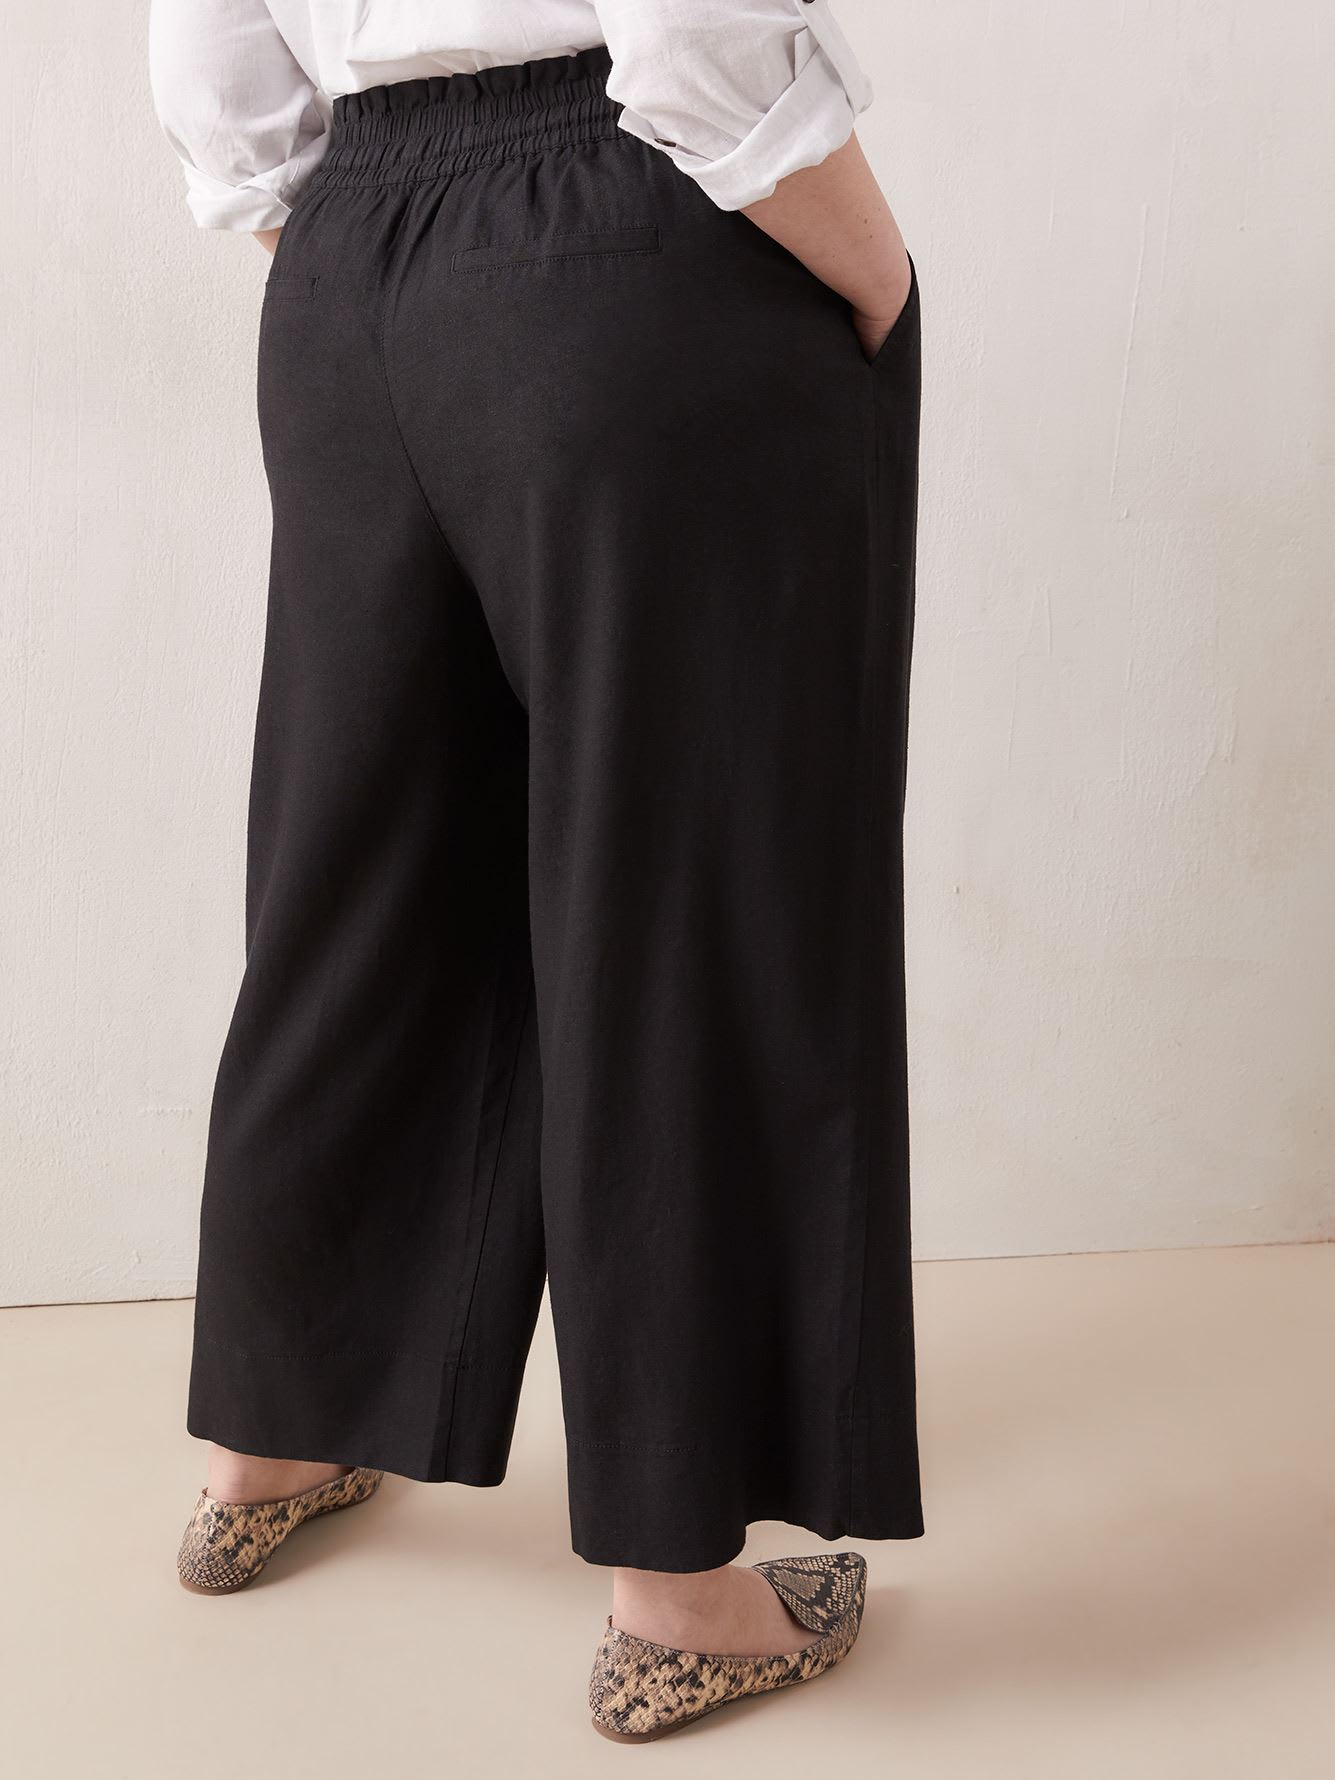 Linen Blend Pull-On Wide-Leg Cropped Pants - In Every Story